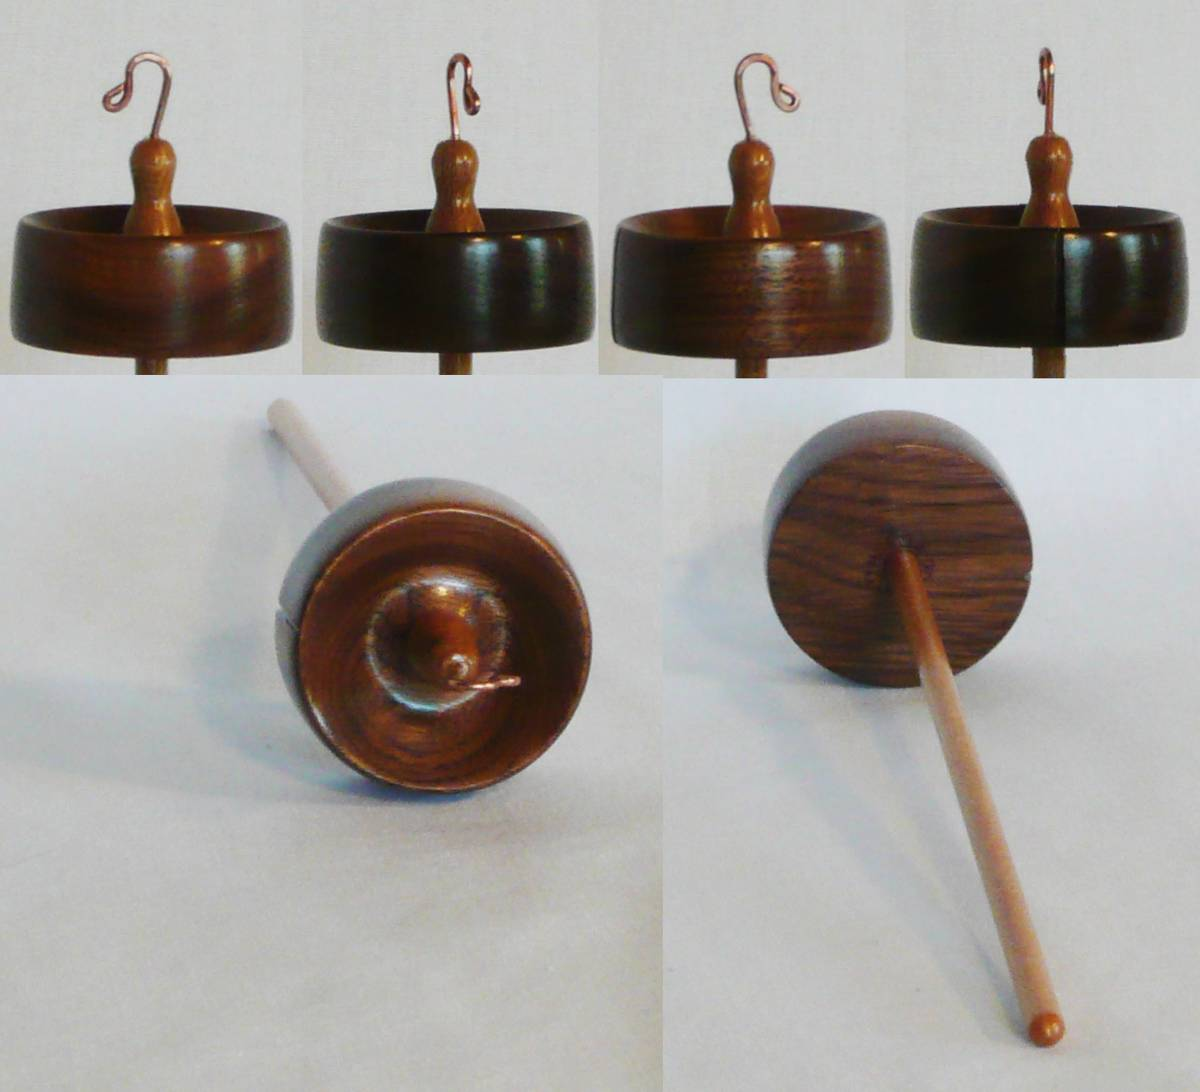 High whorl drop spindle of walnut and sycamore woods.  Hand turned by Cynthia D. Haney signed and numbered 129, weighing 3/4 oz.